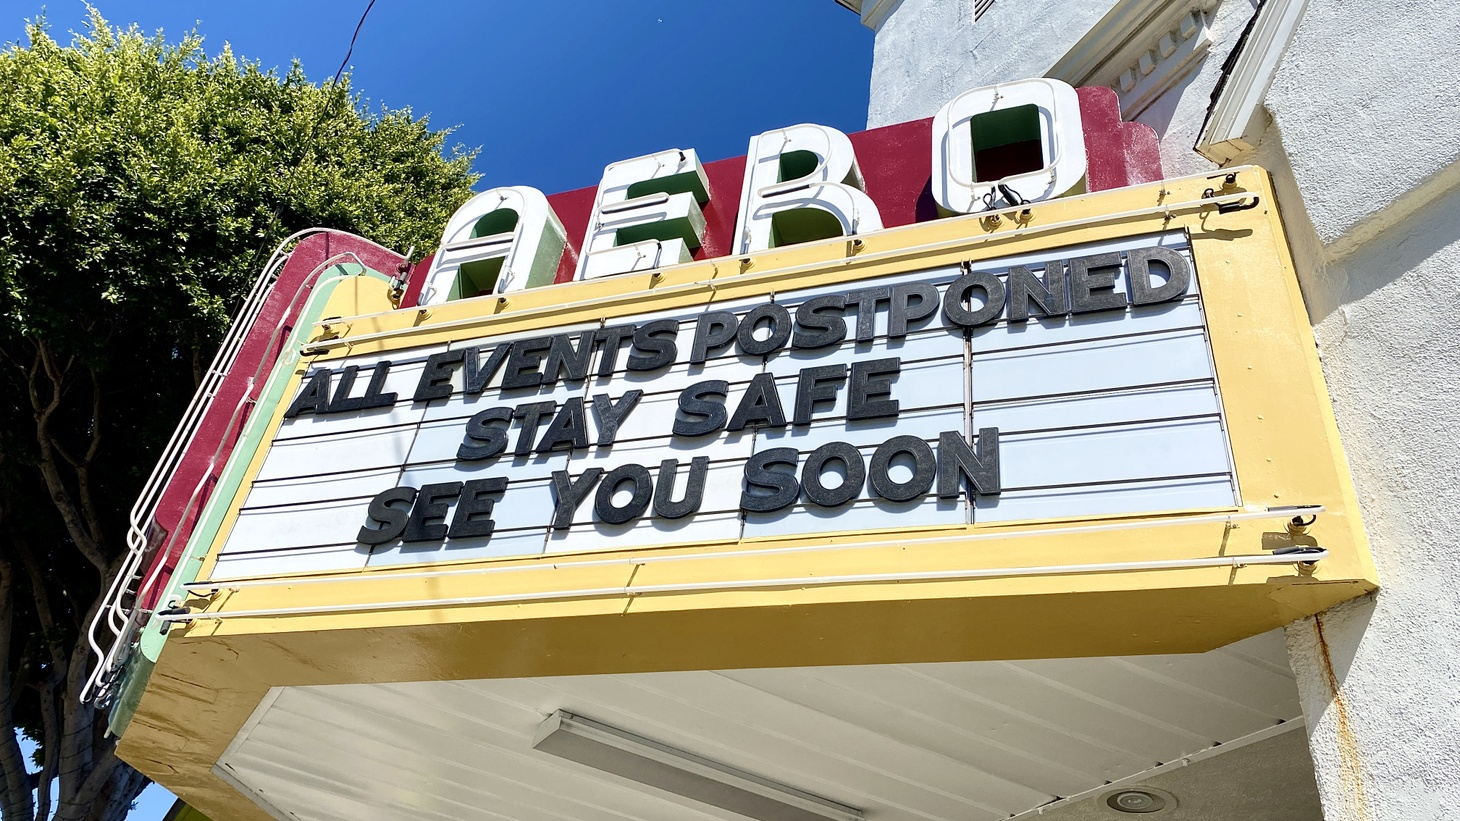 "The Aero Theater in Santa Monica has been closed during the COVID-19 pandemic. Their message to patrons: ""All live events postponed. Stay safe. See you soon."""